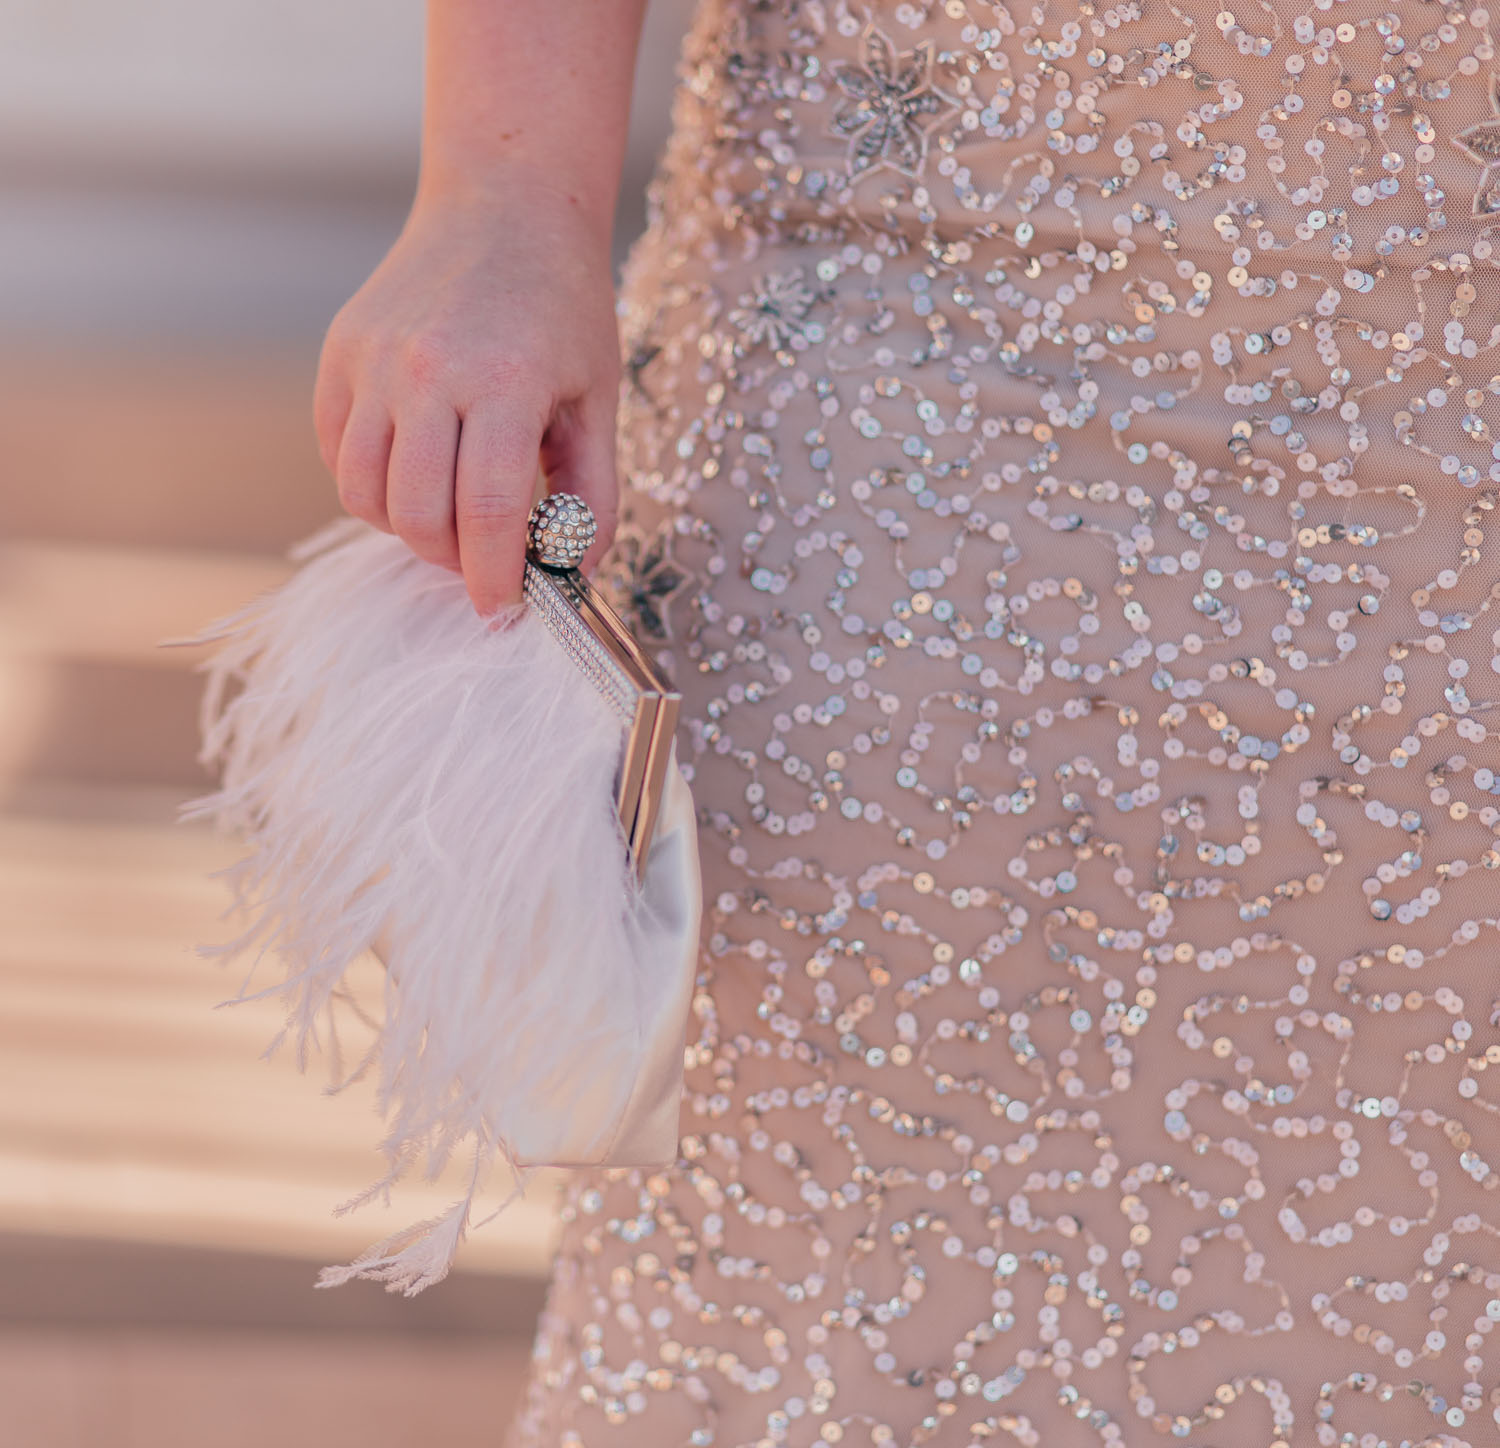 Feminine Fashion Blogger Elizabeth Hugen of Lizzie in Lace shares her Old Hollywood Glam Outfit Inspo with a glamorous Adrianna Papell sequin dress and a Nina Shoes white feather clutch